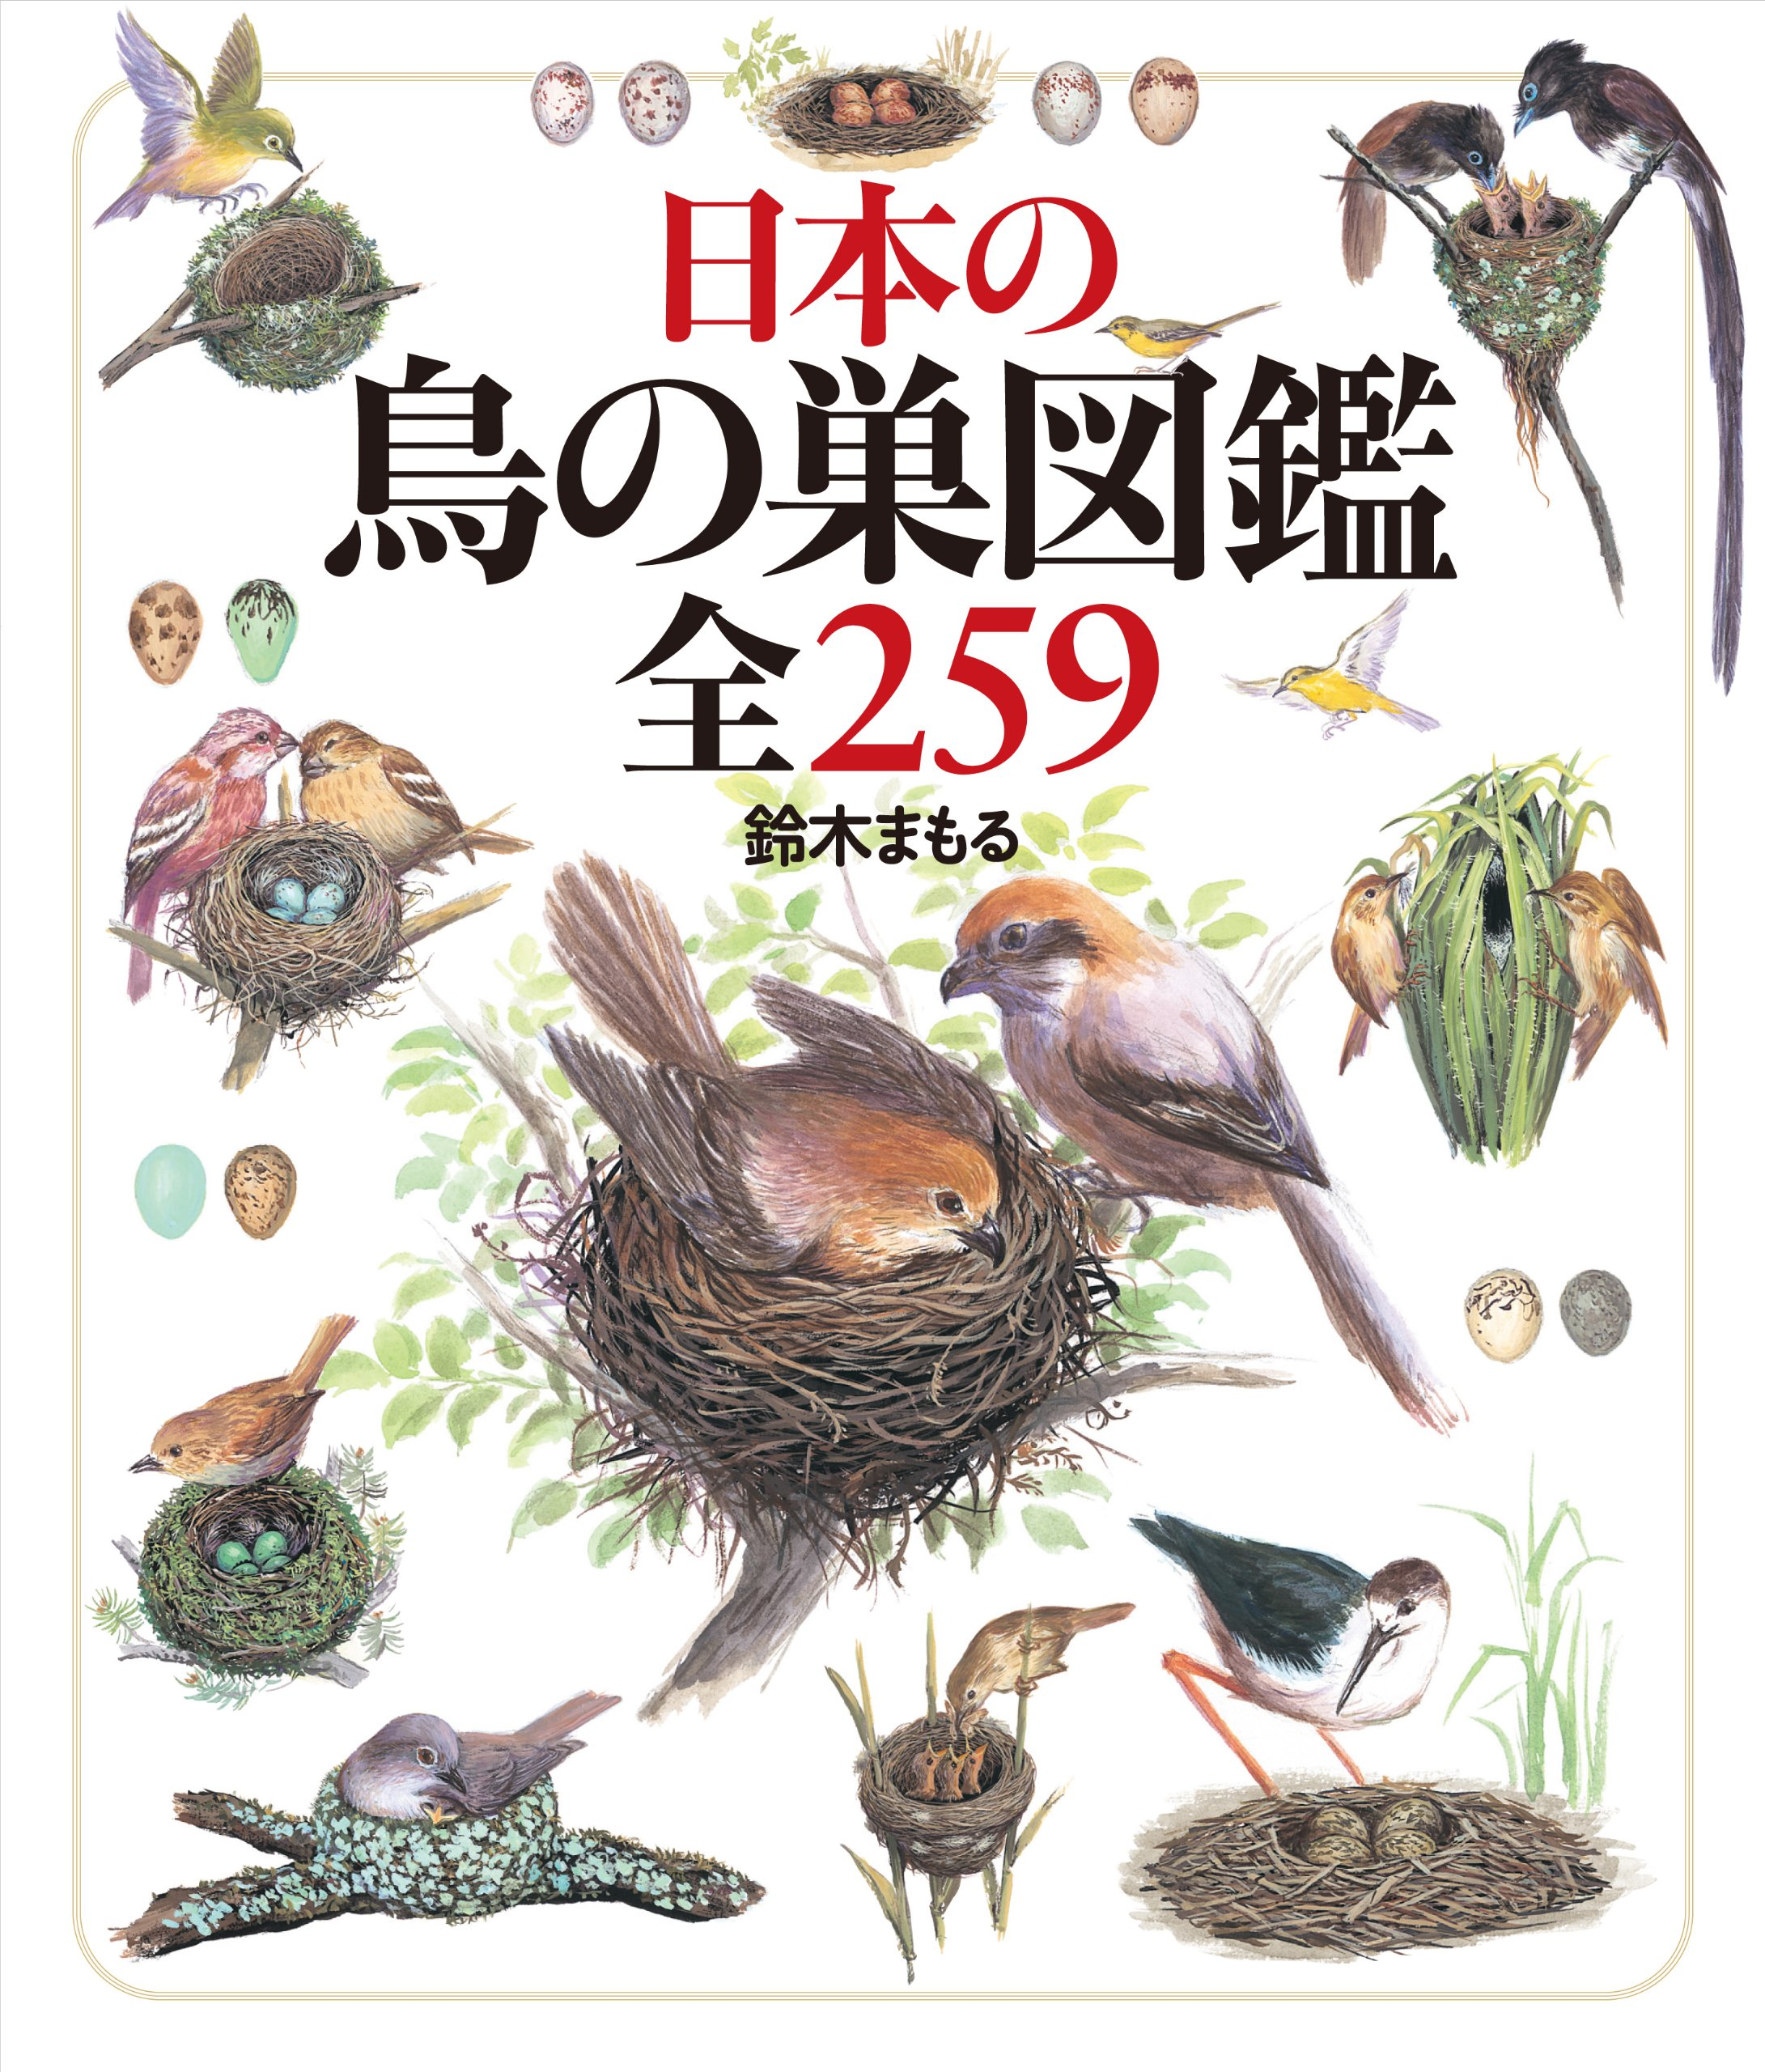 Read Online All 259 nest illustrated book of birds of Japan (2011) ISBN: 4035279005 [Japanese Import] ebook